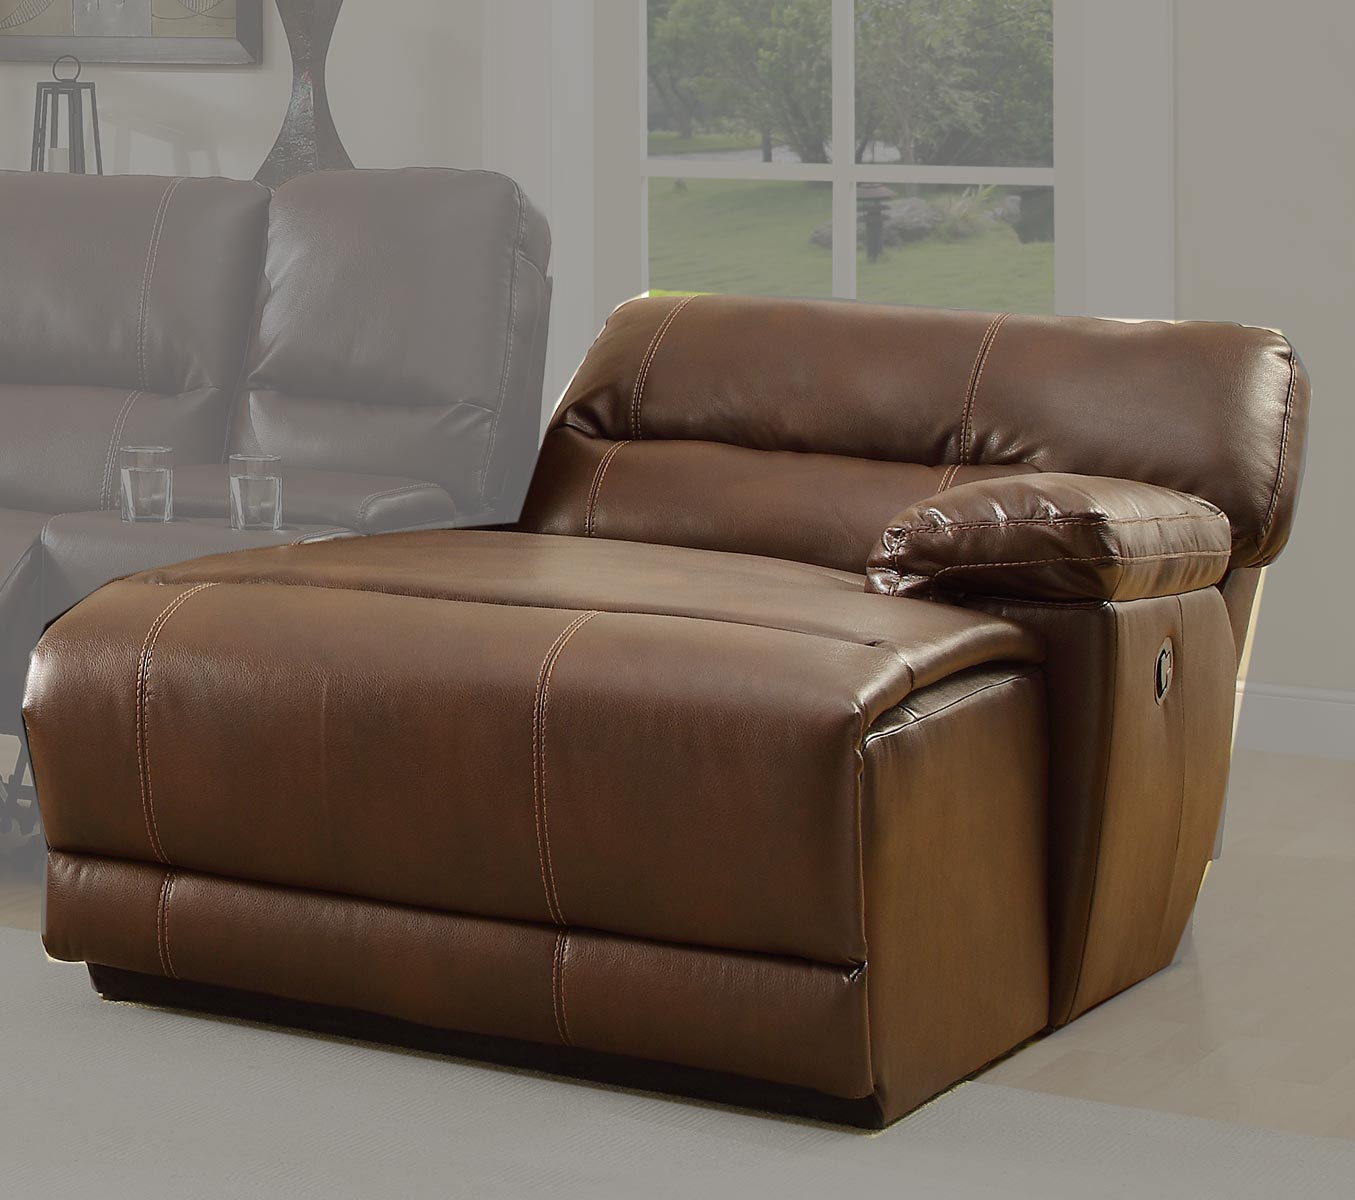 Homelegance Blythe RSF Back Recliner Chaise - Brown - Bonded Leather